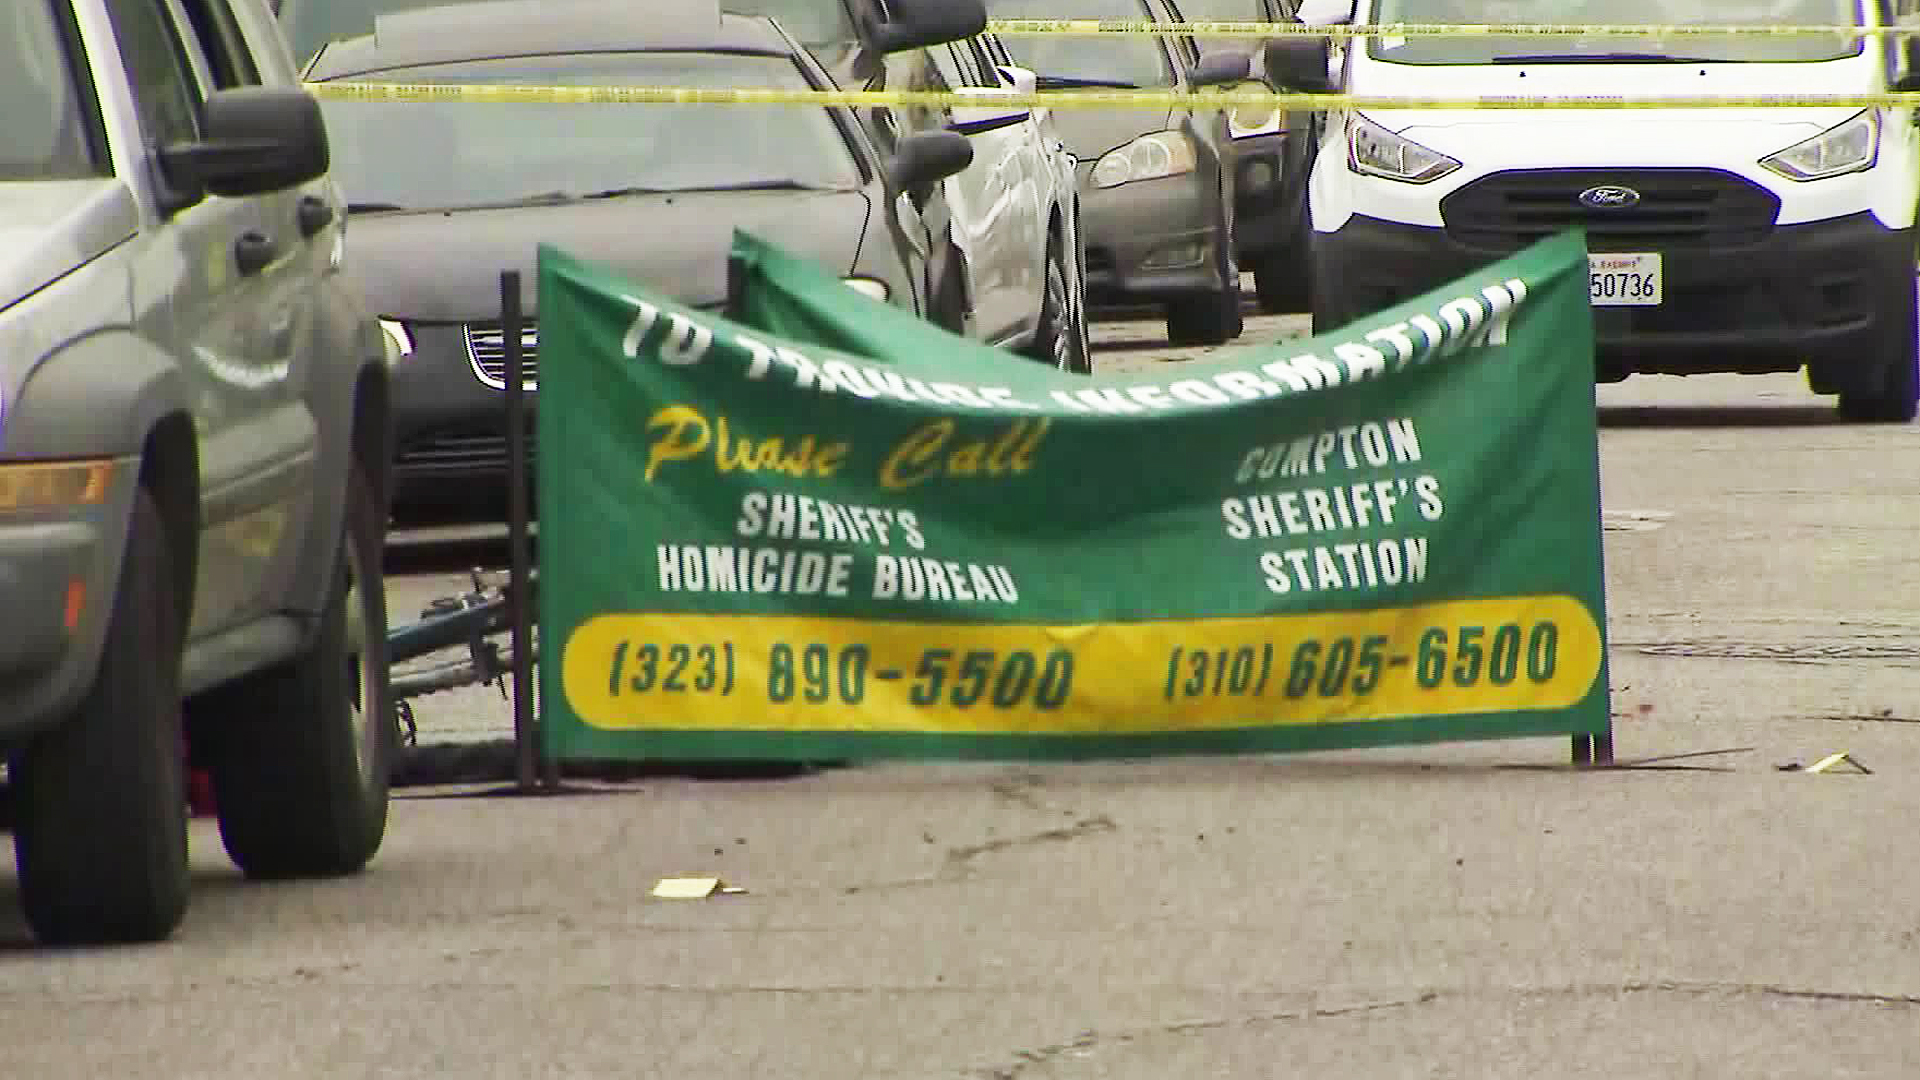 A body was found on a street in Compton following a shootout on July 3, 2019. (Credit: KTLA)